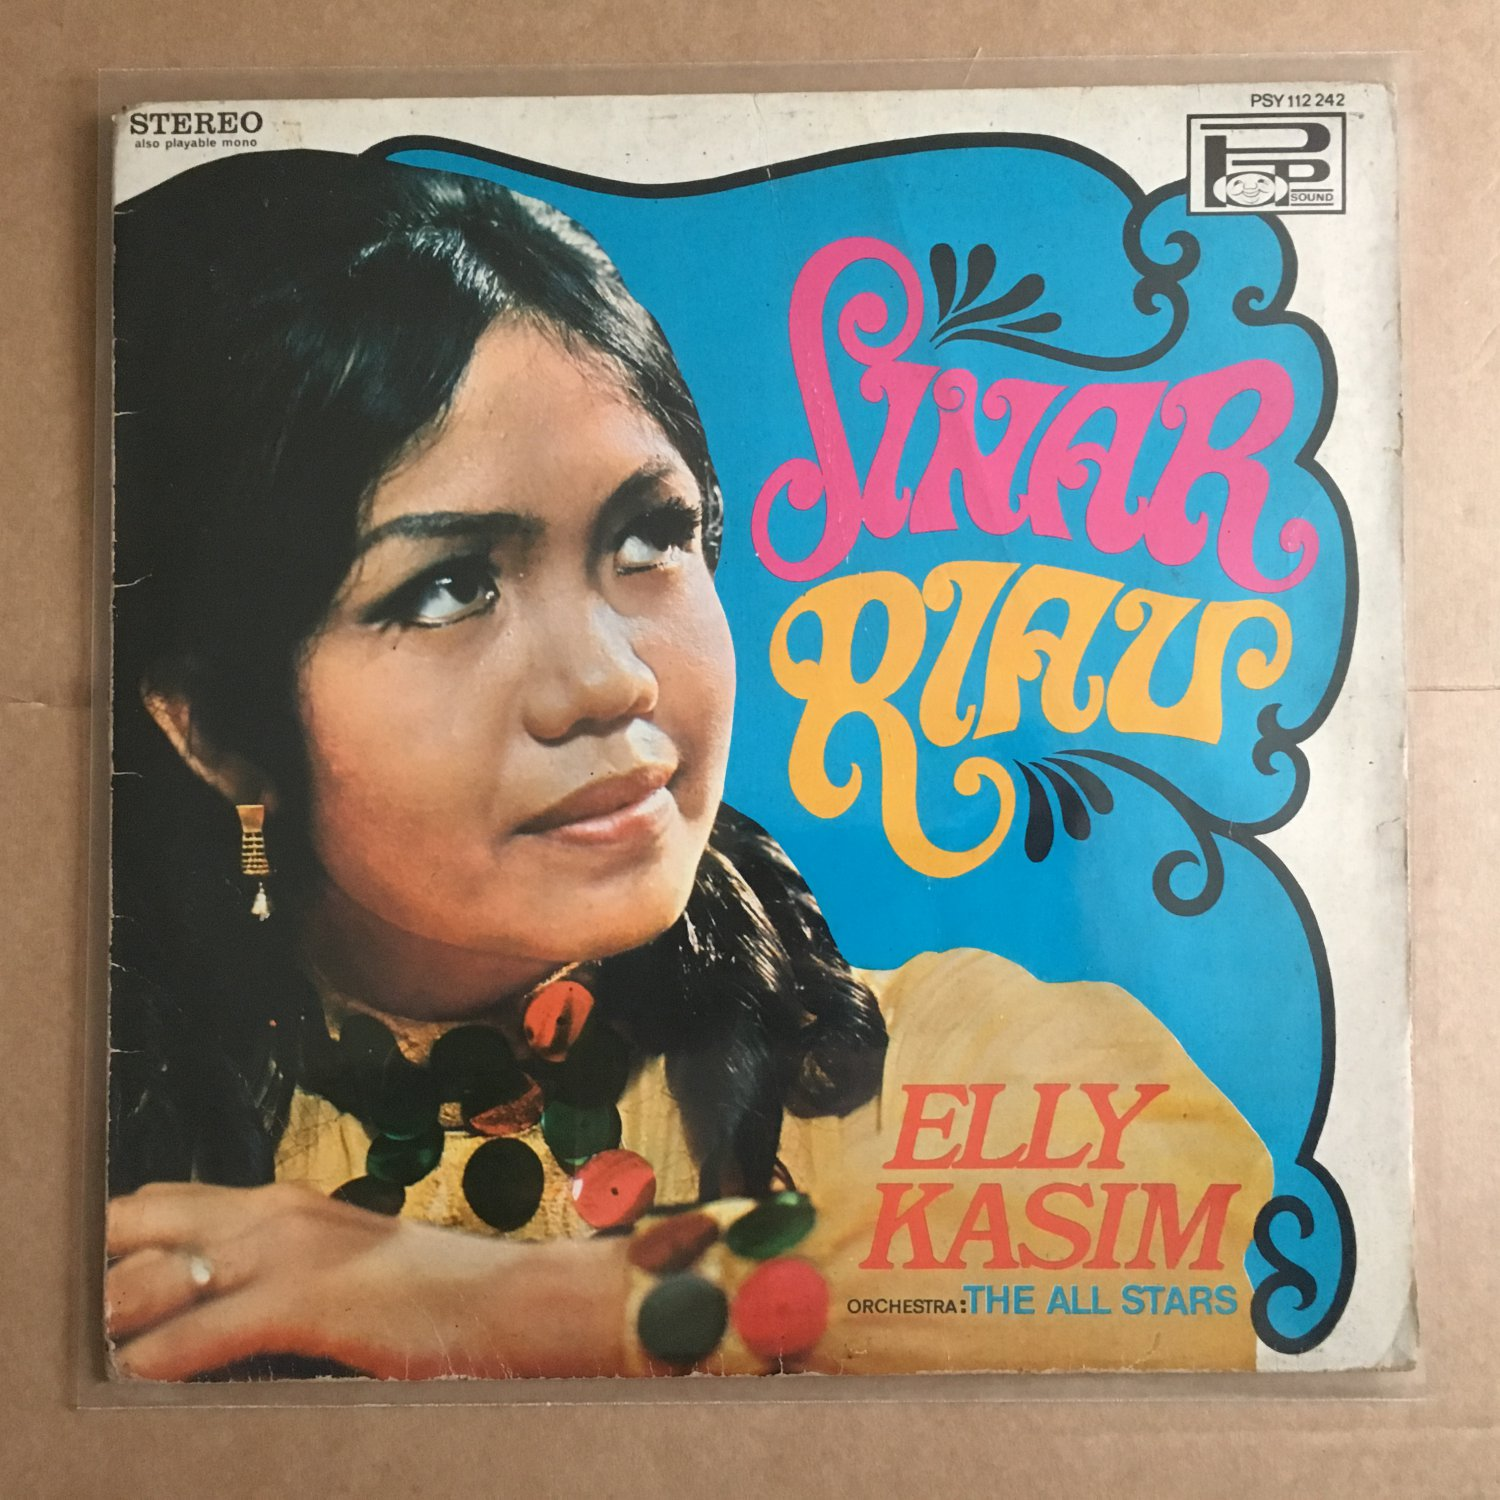 ELLY KASSIM LP sinar riau INDONESIA SOUL BEAT GARAGE BREAKS mp3 LISTEN